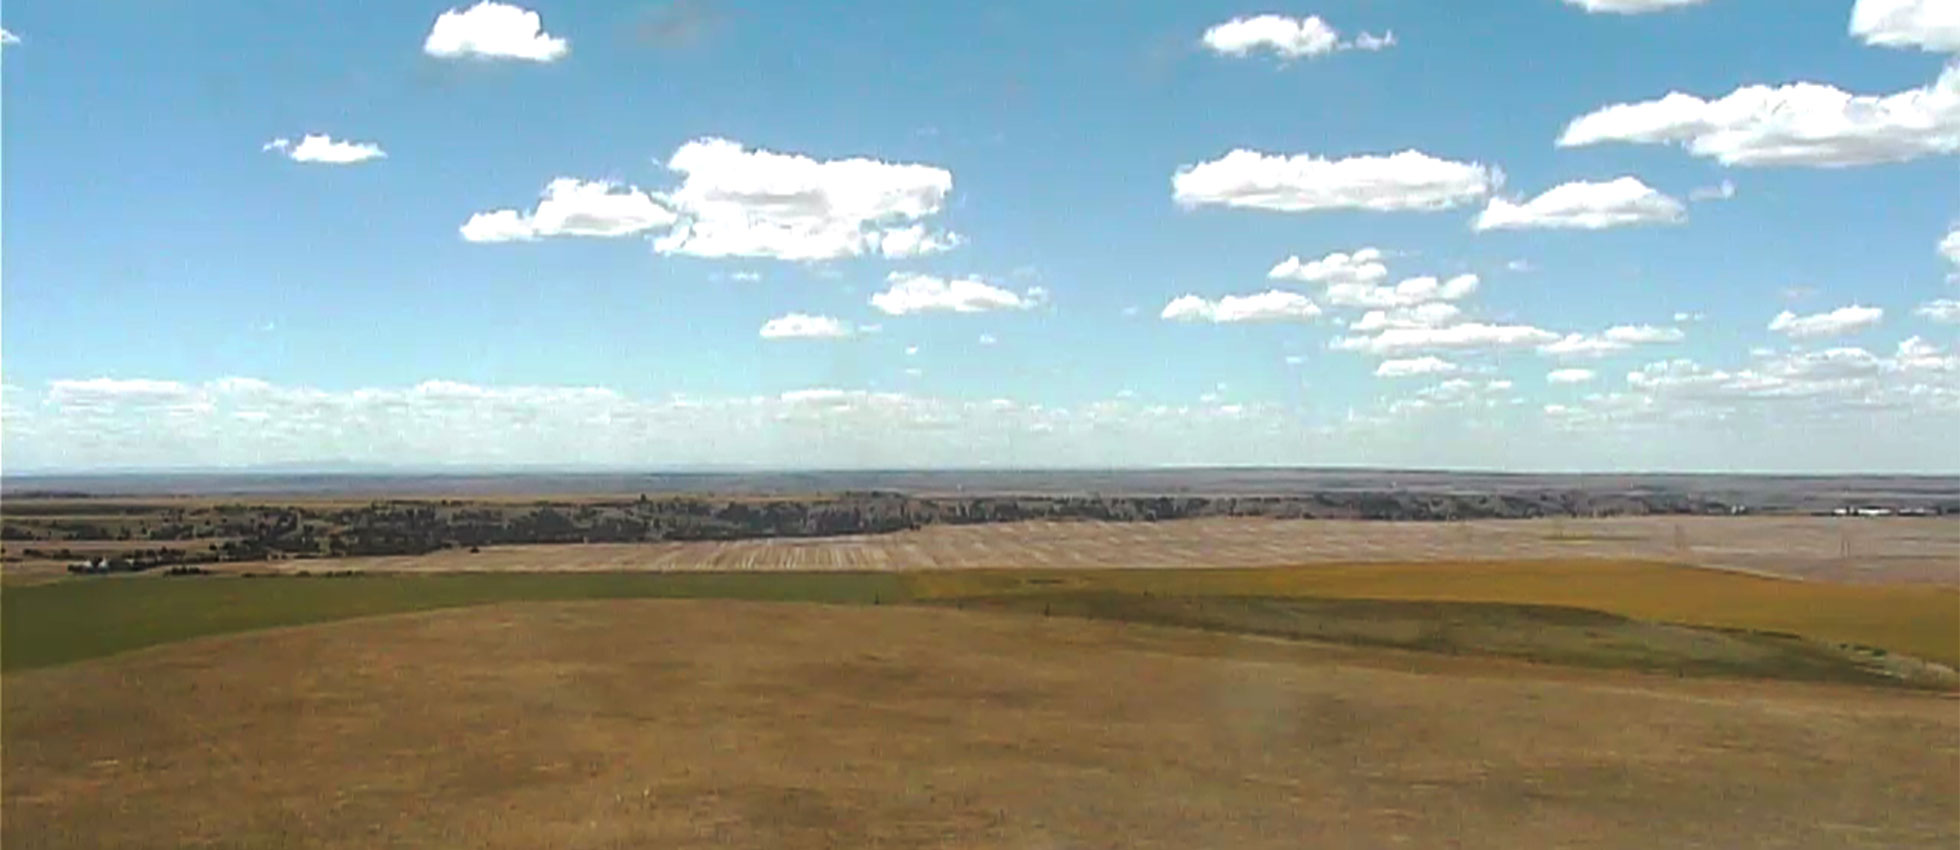 Wall South Dakota skycam weather forecast